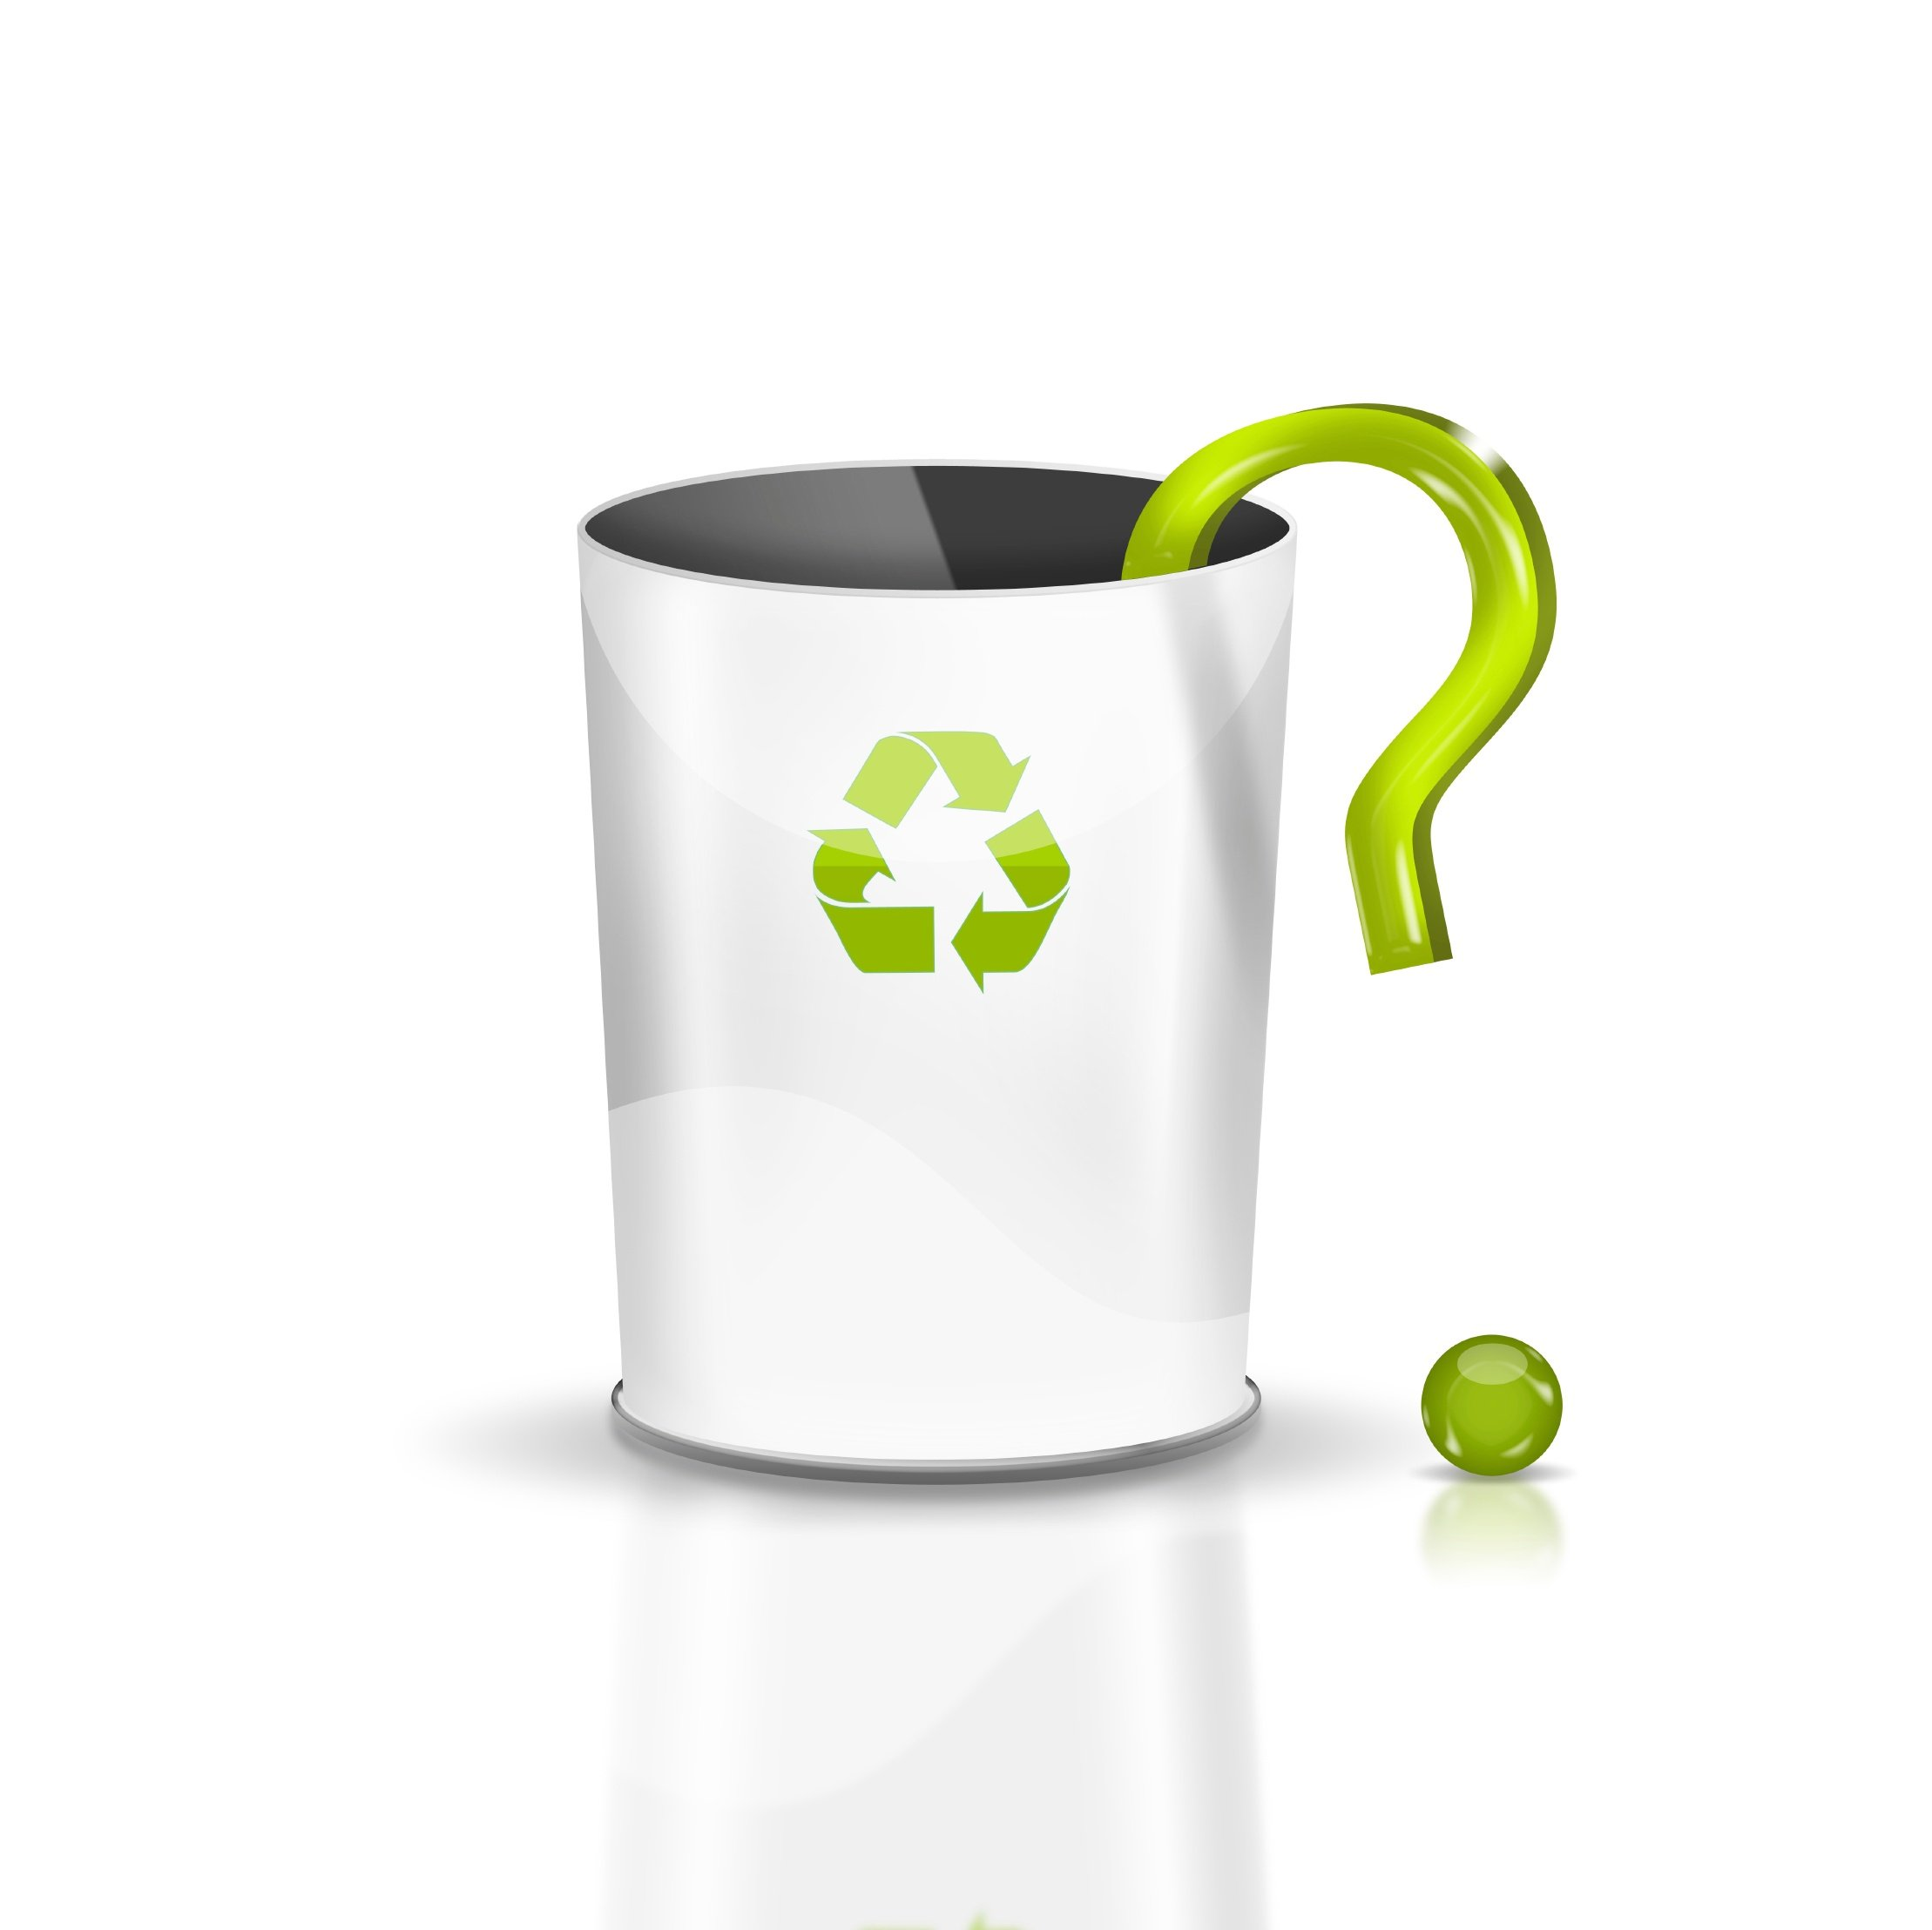 The Recycling Question